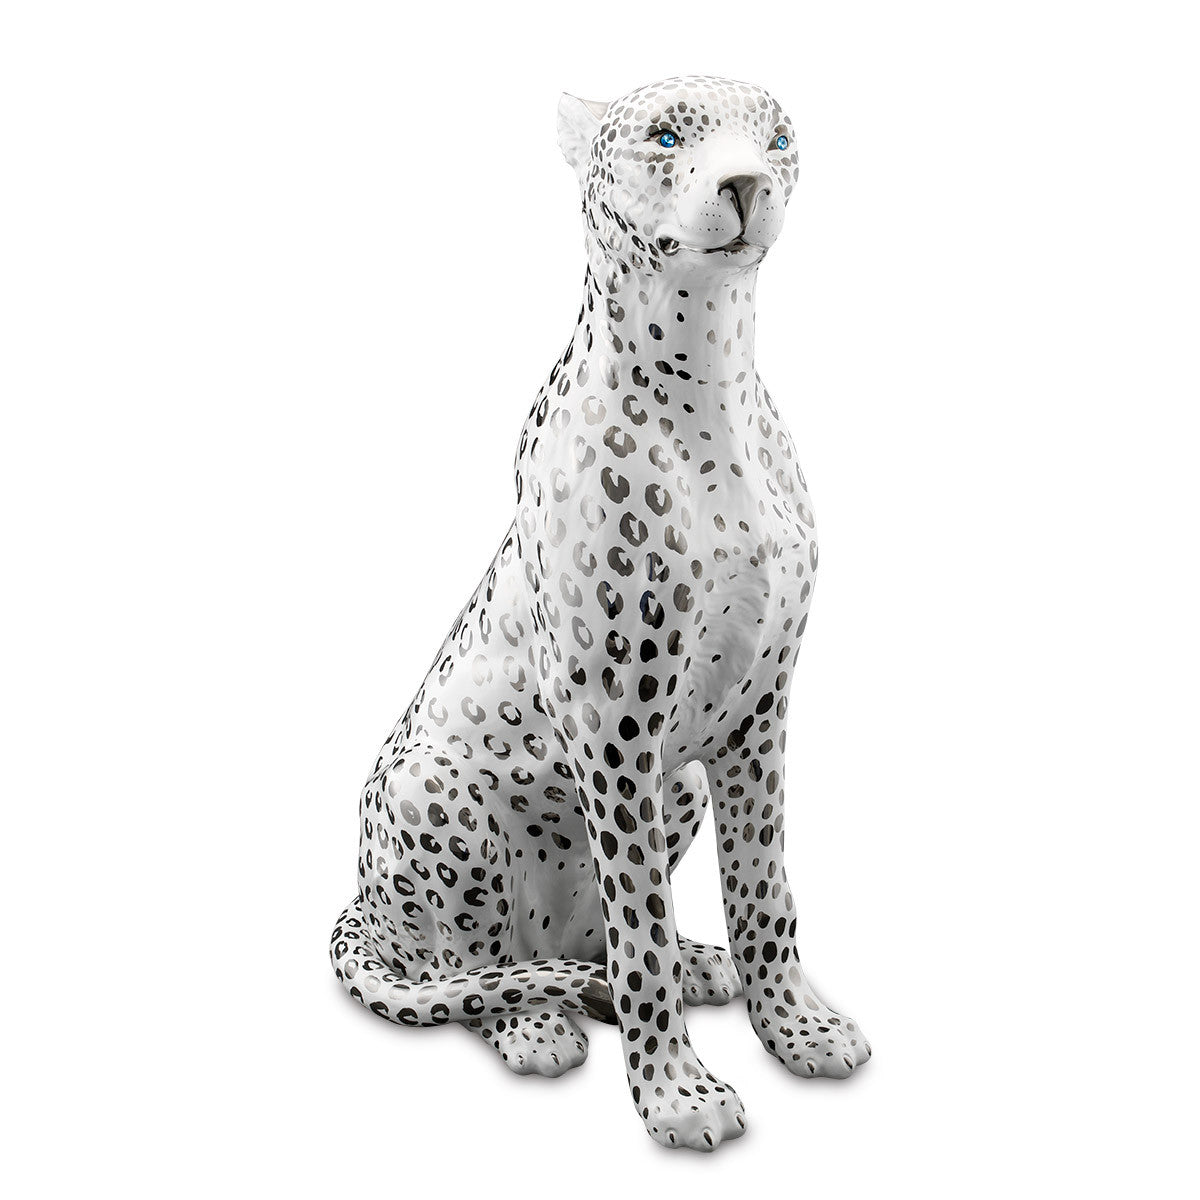 Sitting large ceramic leopard statue platinum